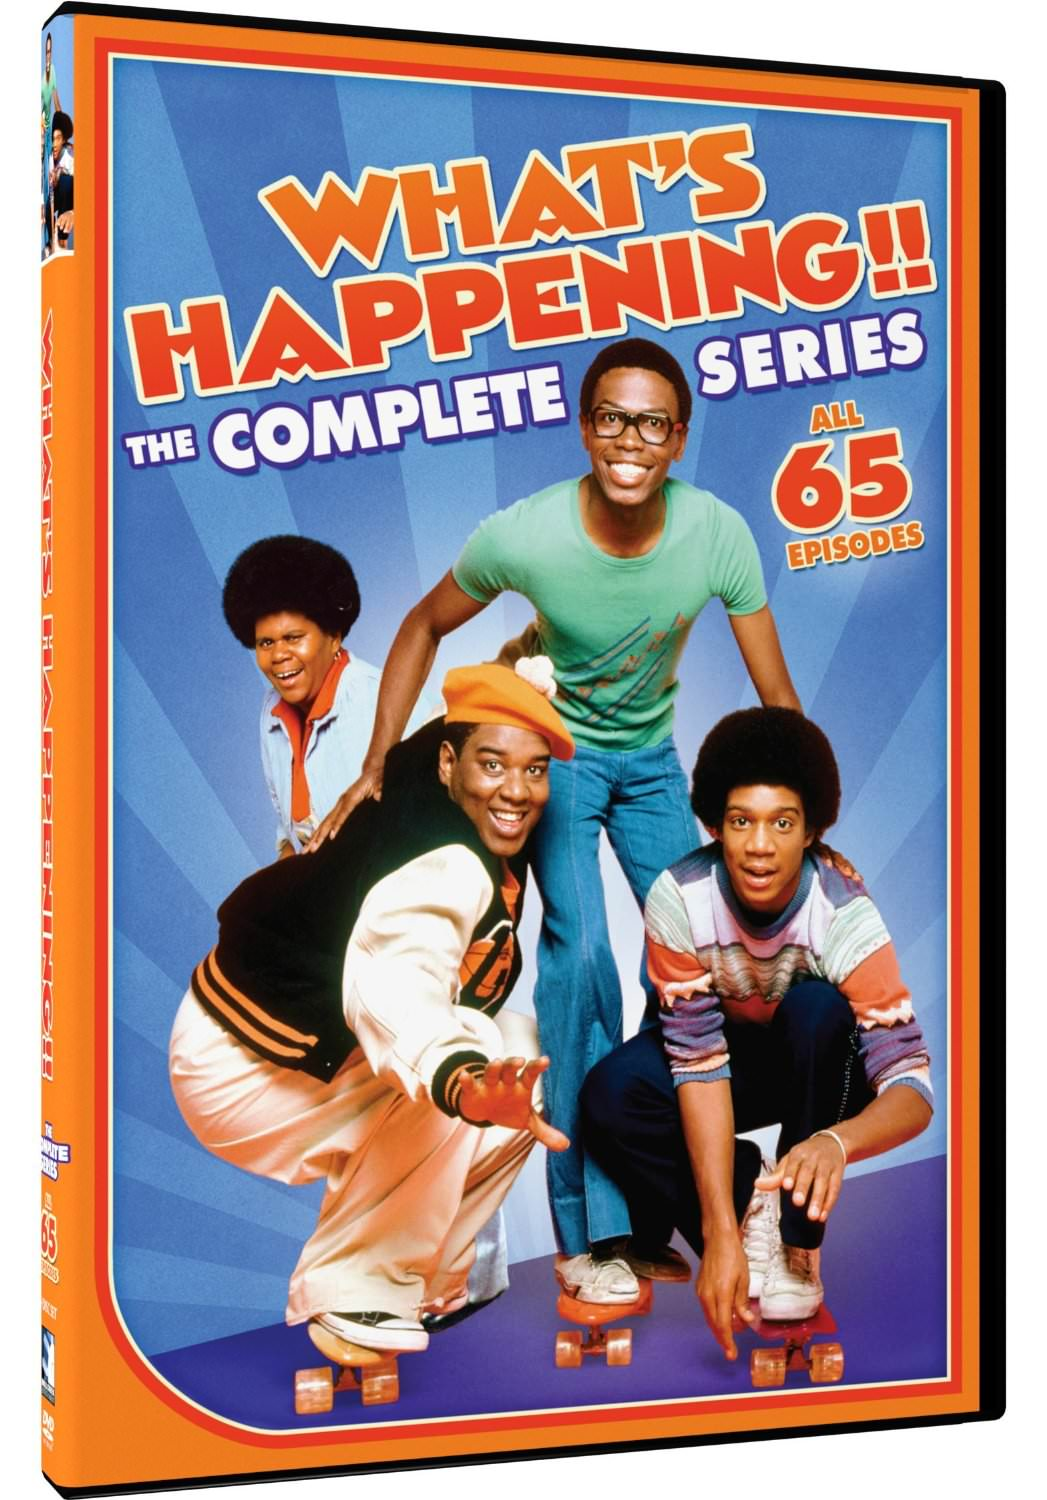 What's Happening: The Complete Series - Seasons 1-3, DVD